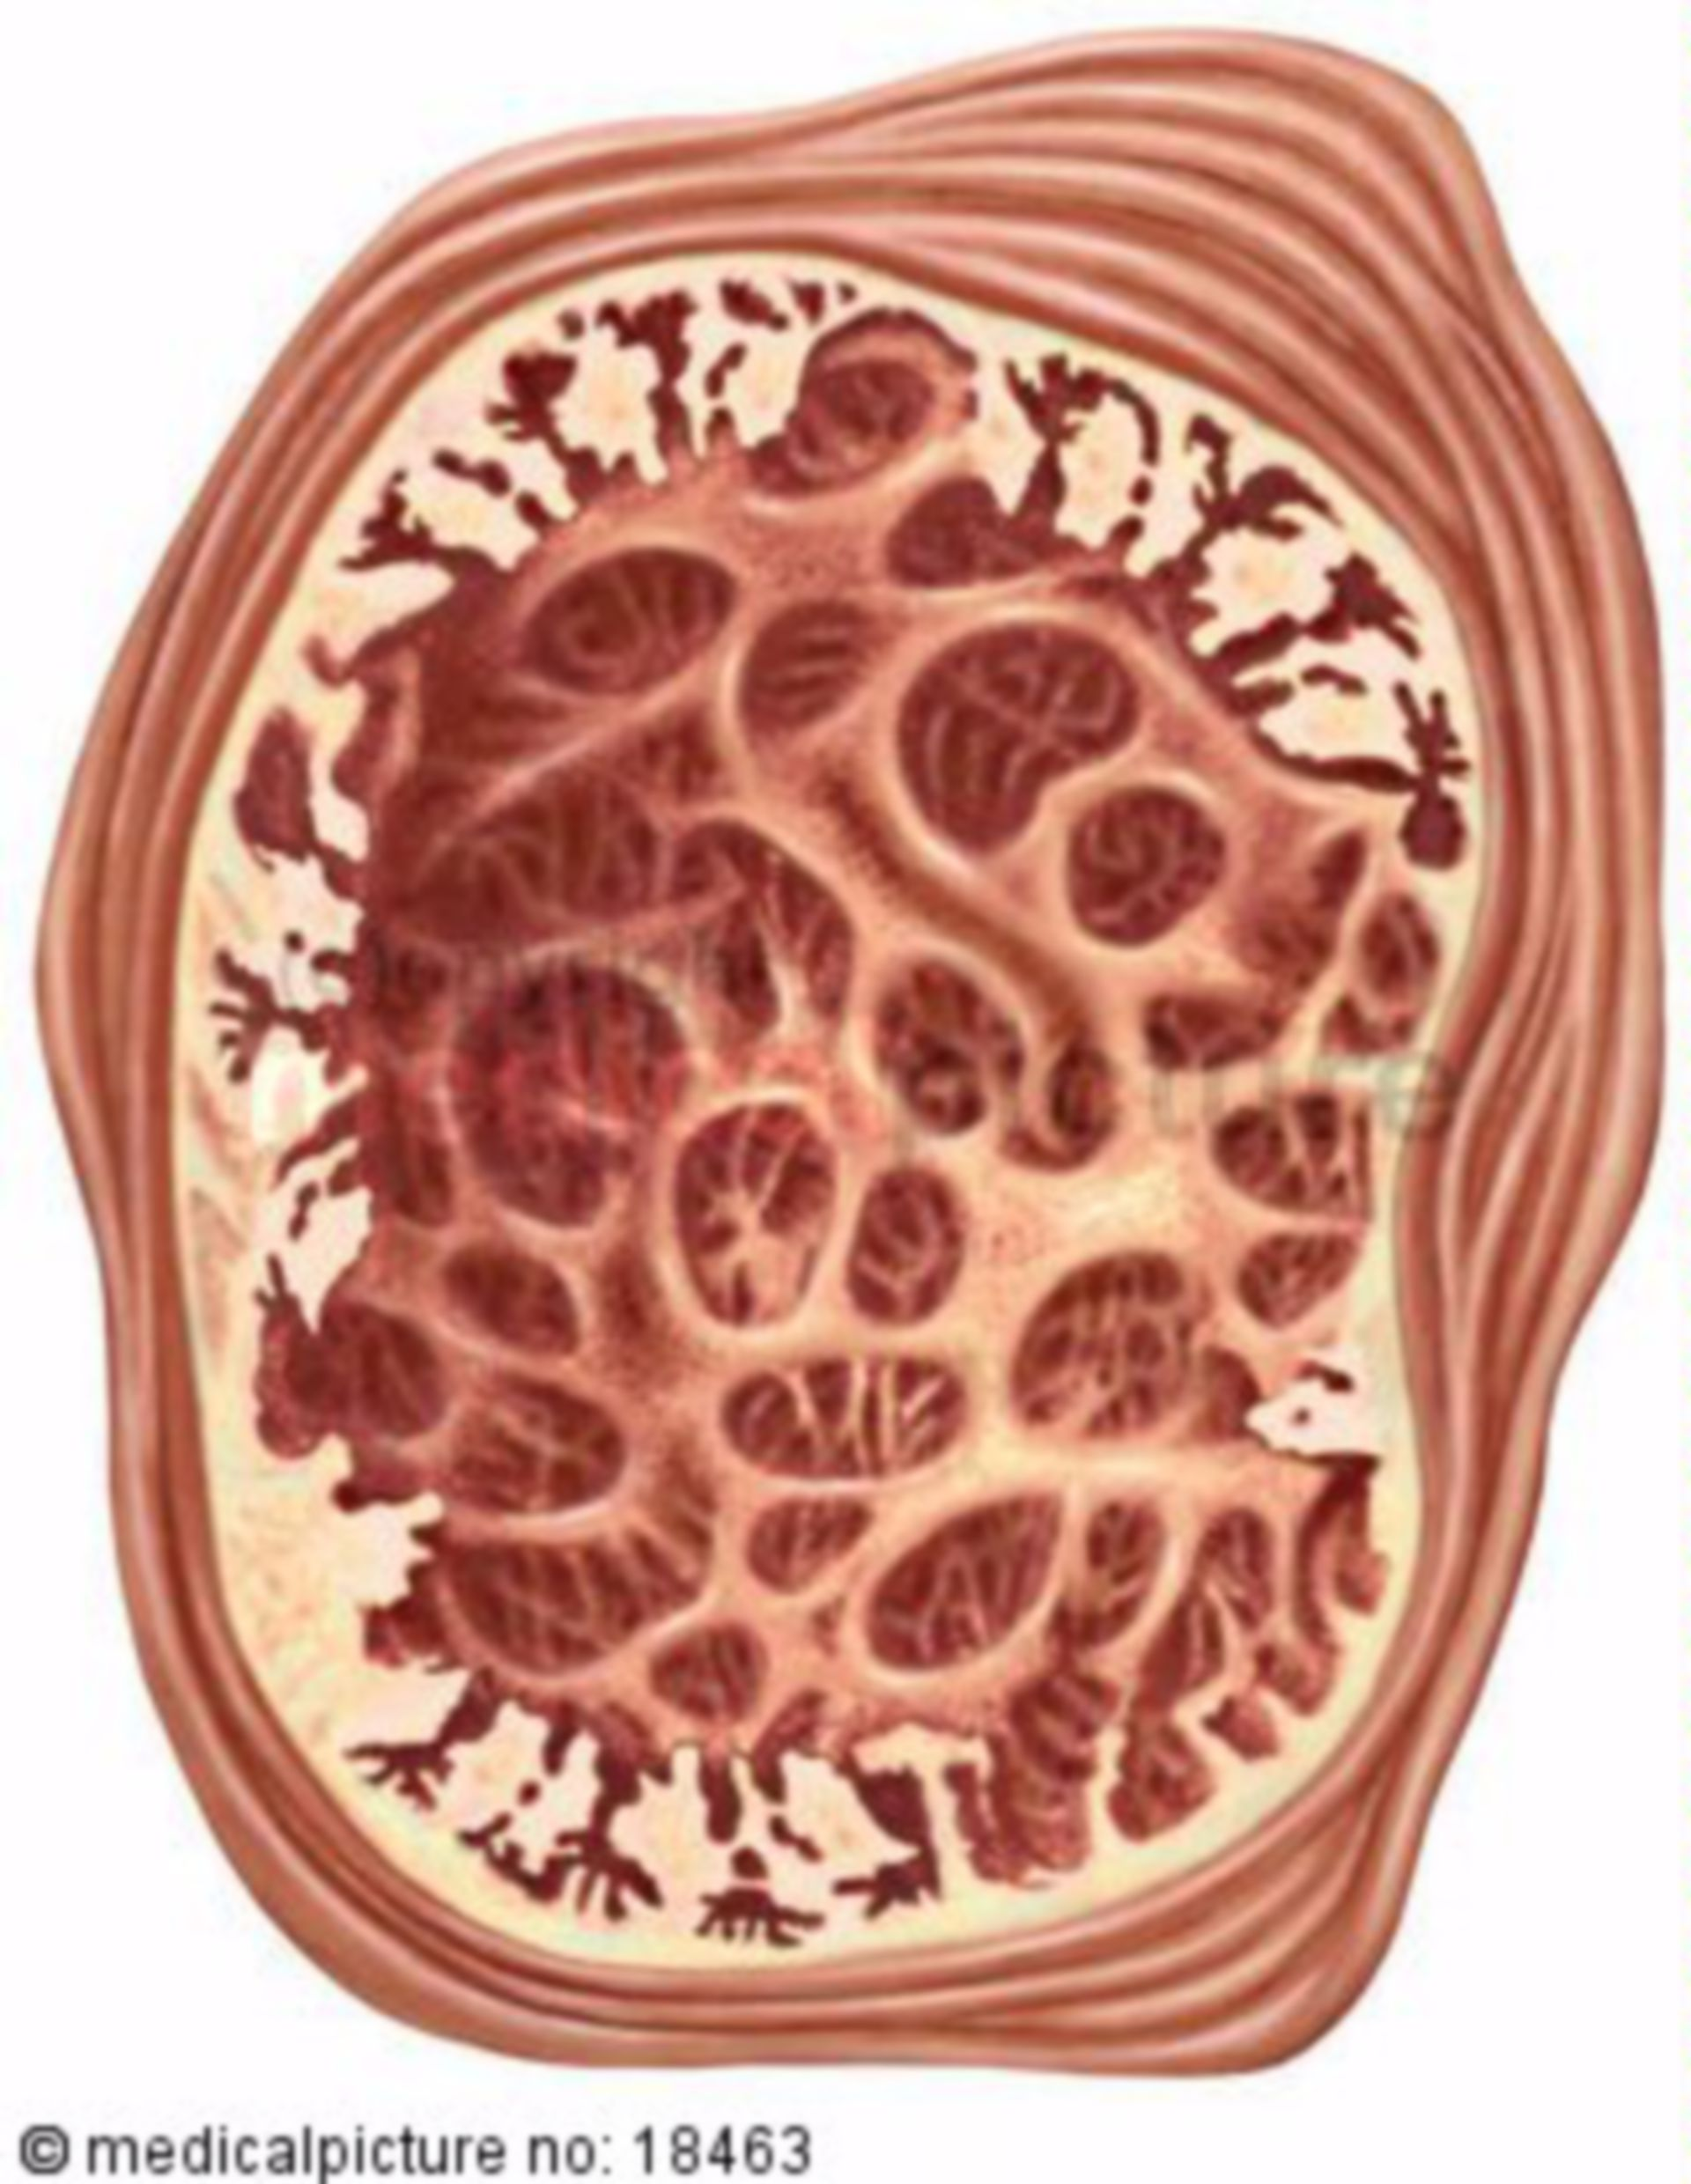 Cross-section of seminal vesicle